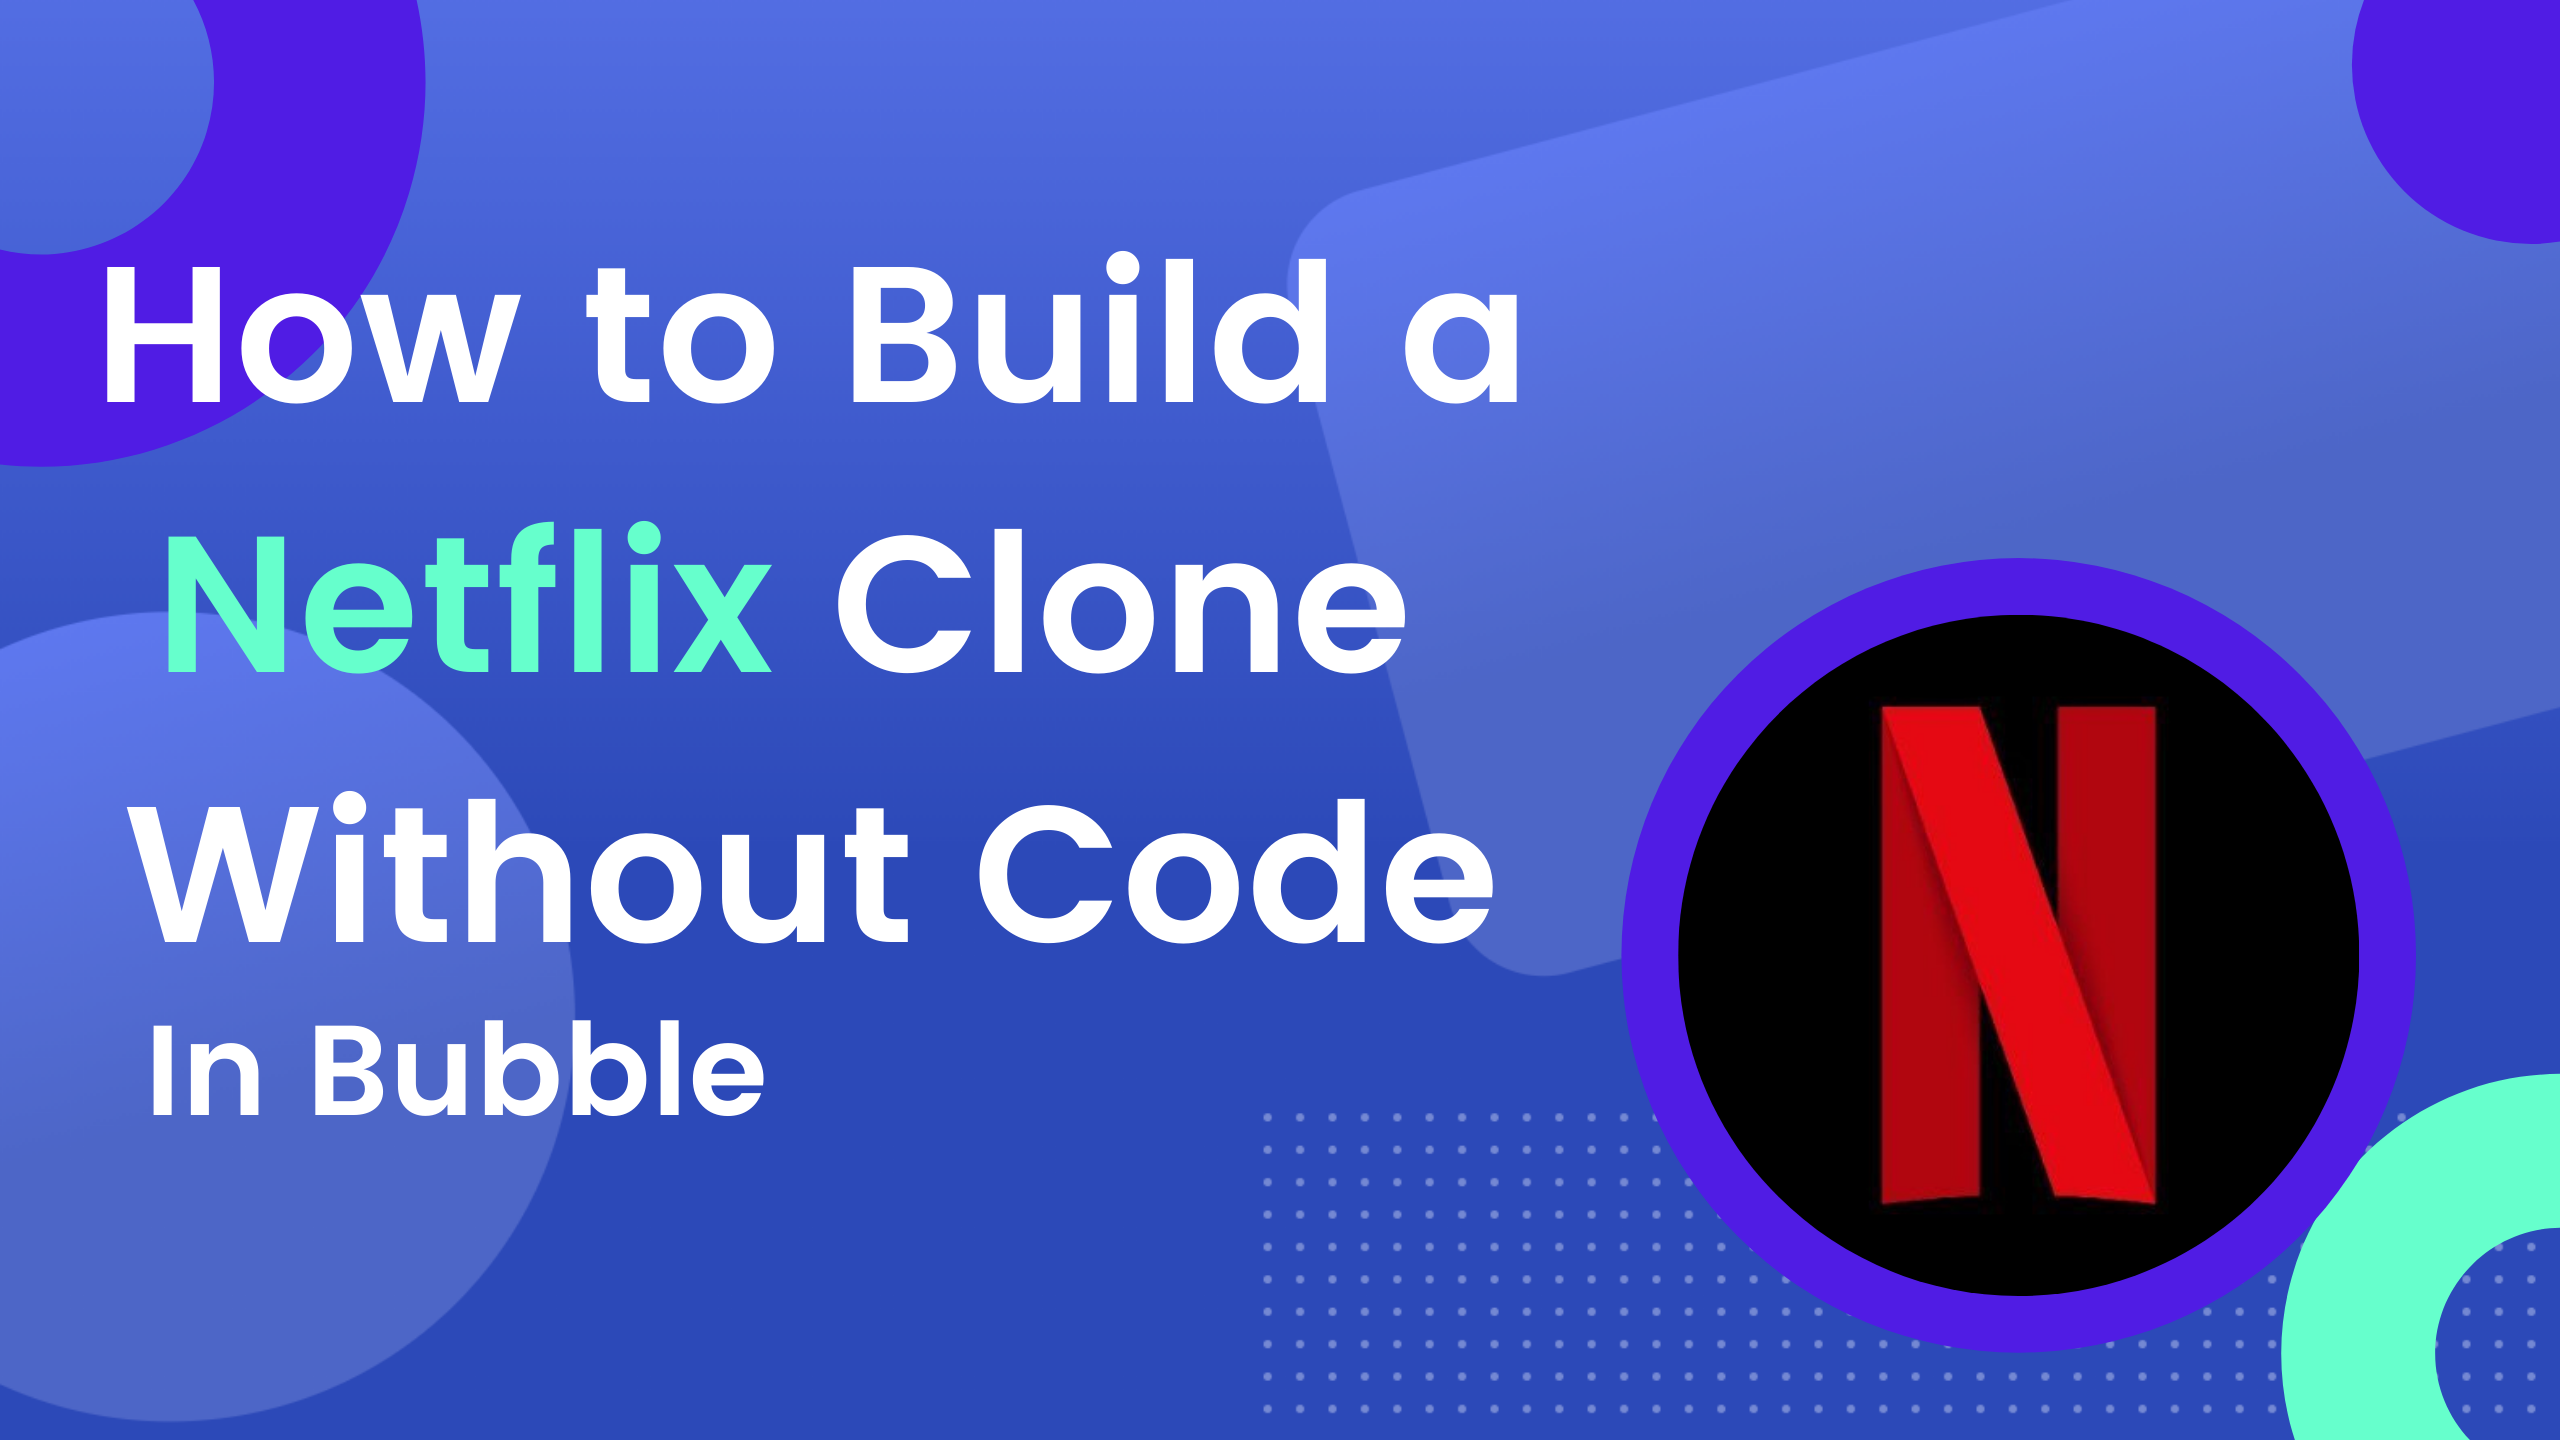 How to build a Netflix clone without code